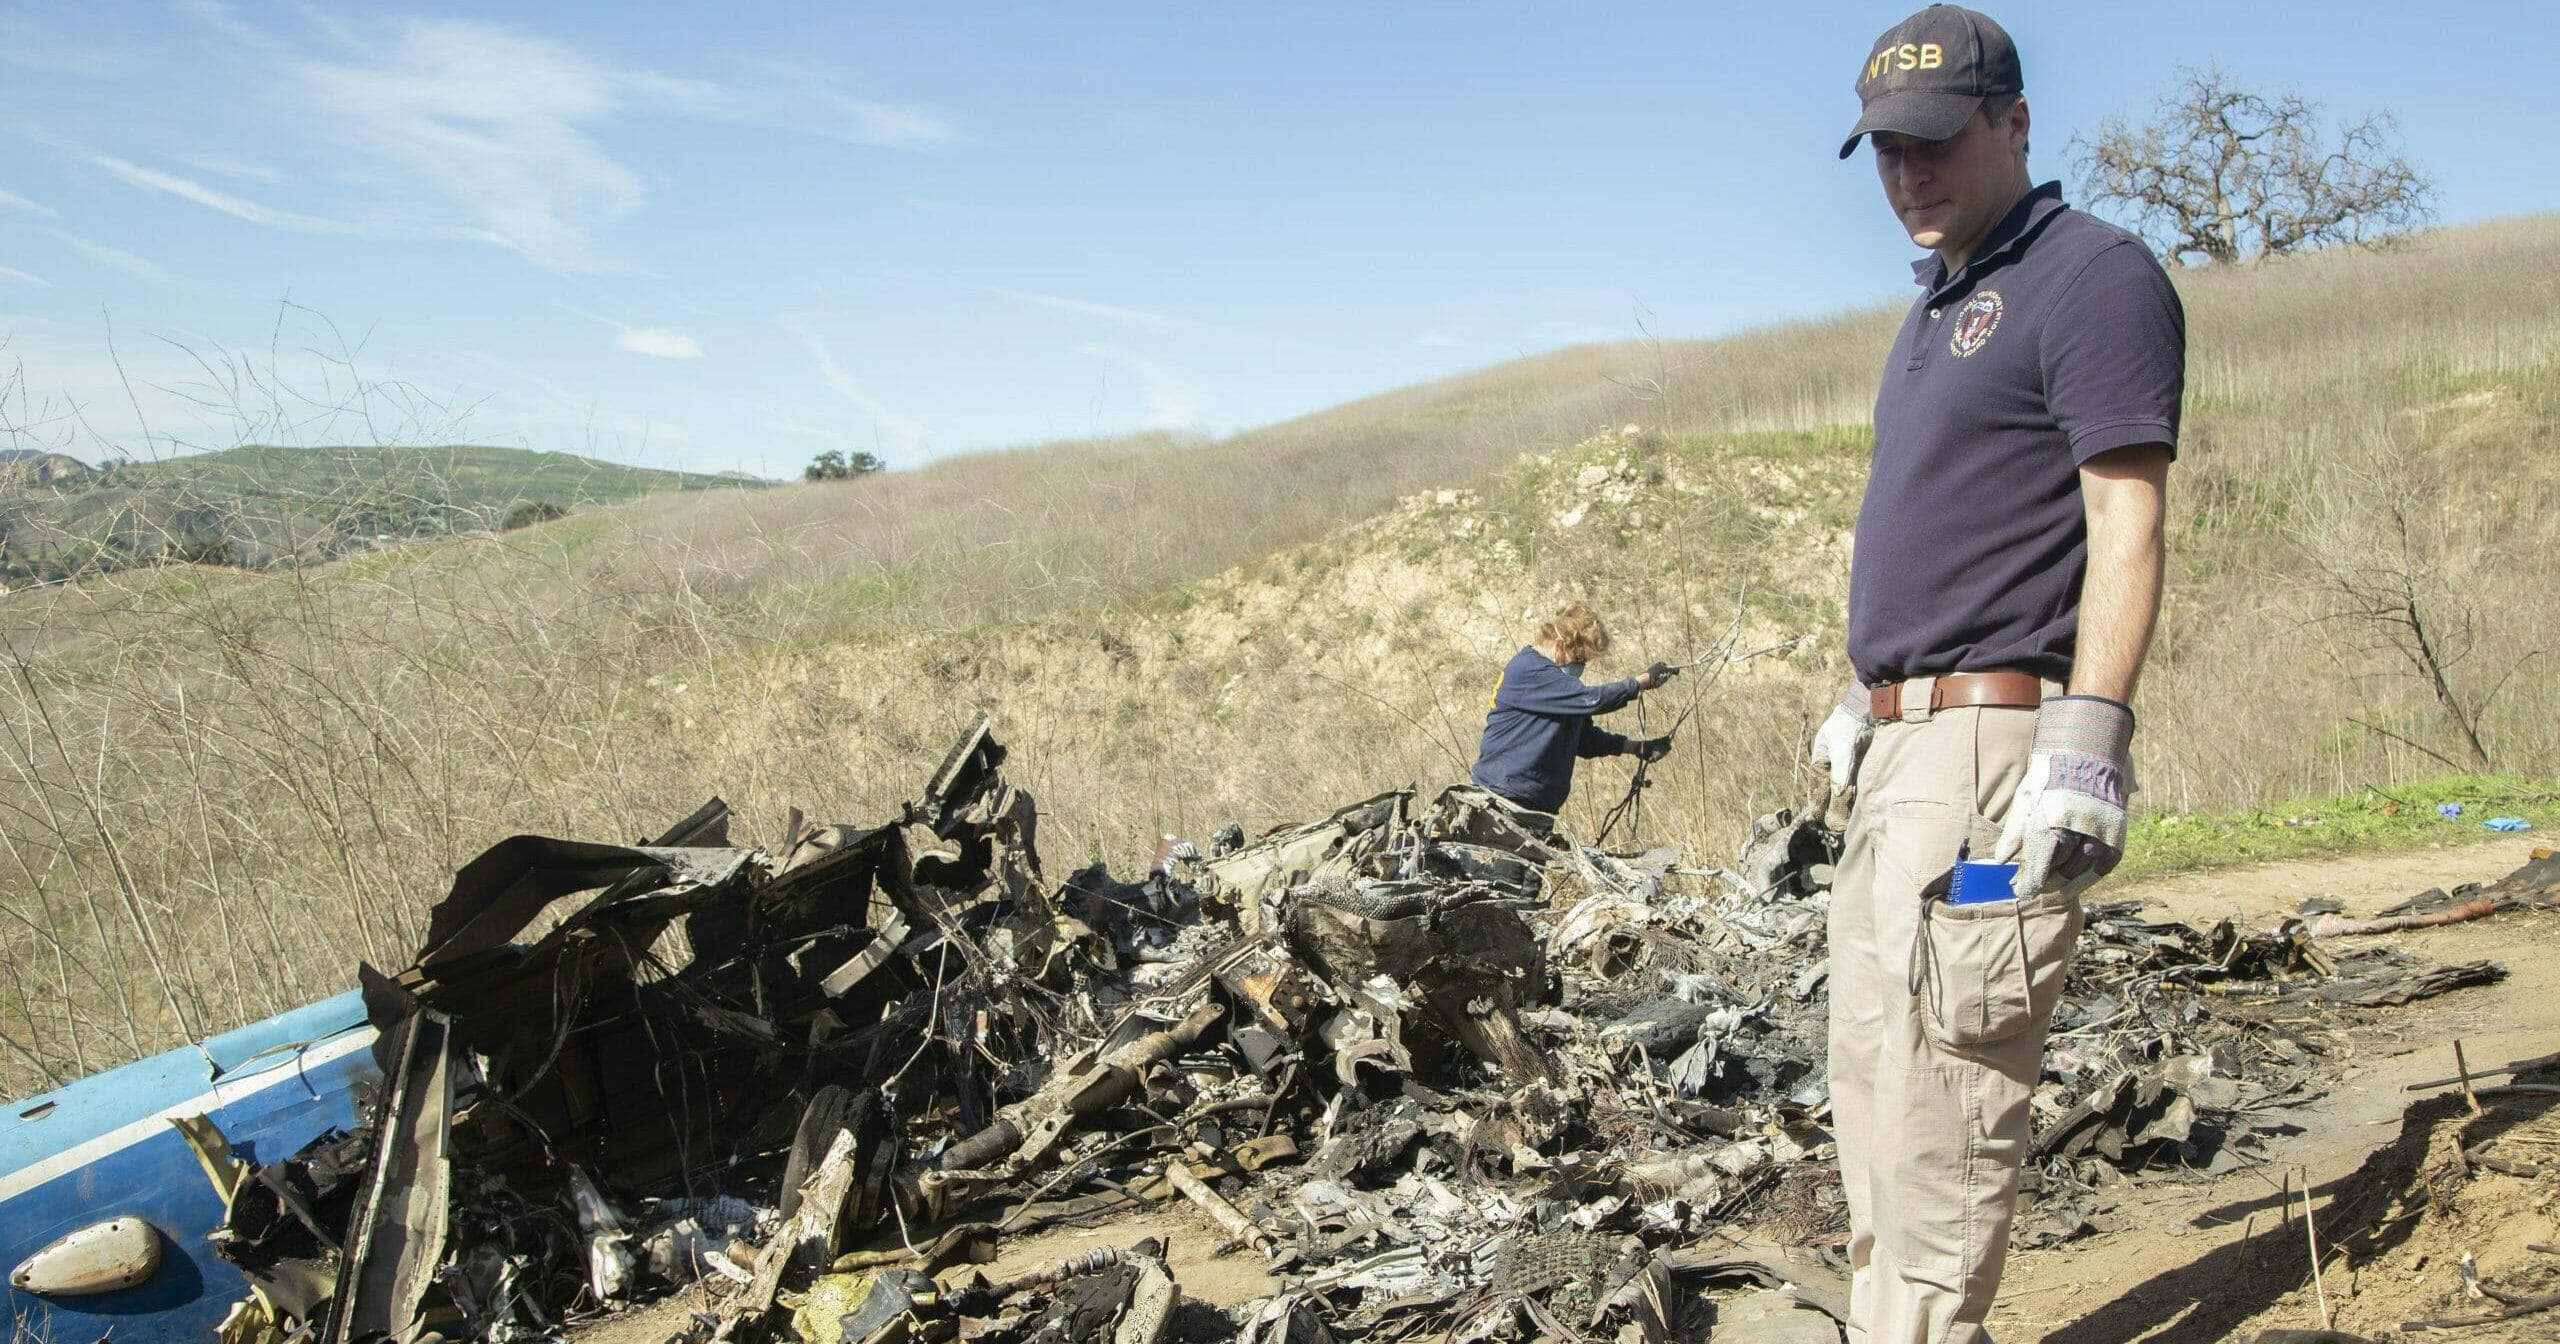 In this image taken Jan. 27, 2020, and provided by the National Transportation Safety Board, NTSB investigators Adam Huray, right, and Carol Hogan examine wreckage as part of the NTSB's investigation of a helicopter crash near Calabasas, California. The Jan. 26 crash killed former NBA basketball player Kobe Bryant, his 13-year-old daughter, Gianna, and seven others.